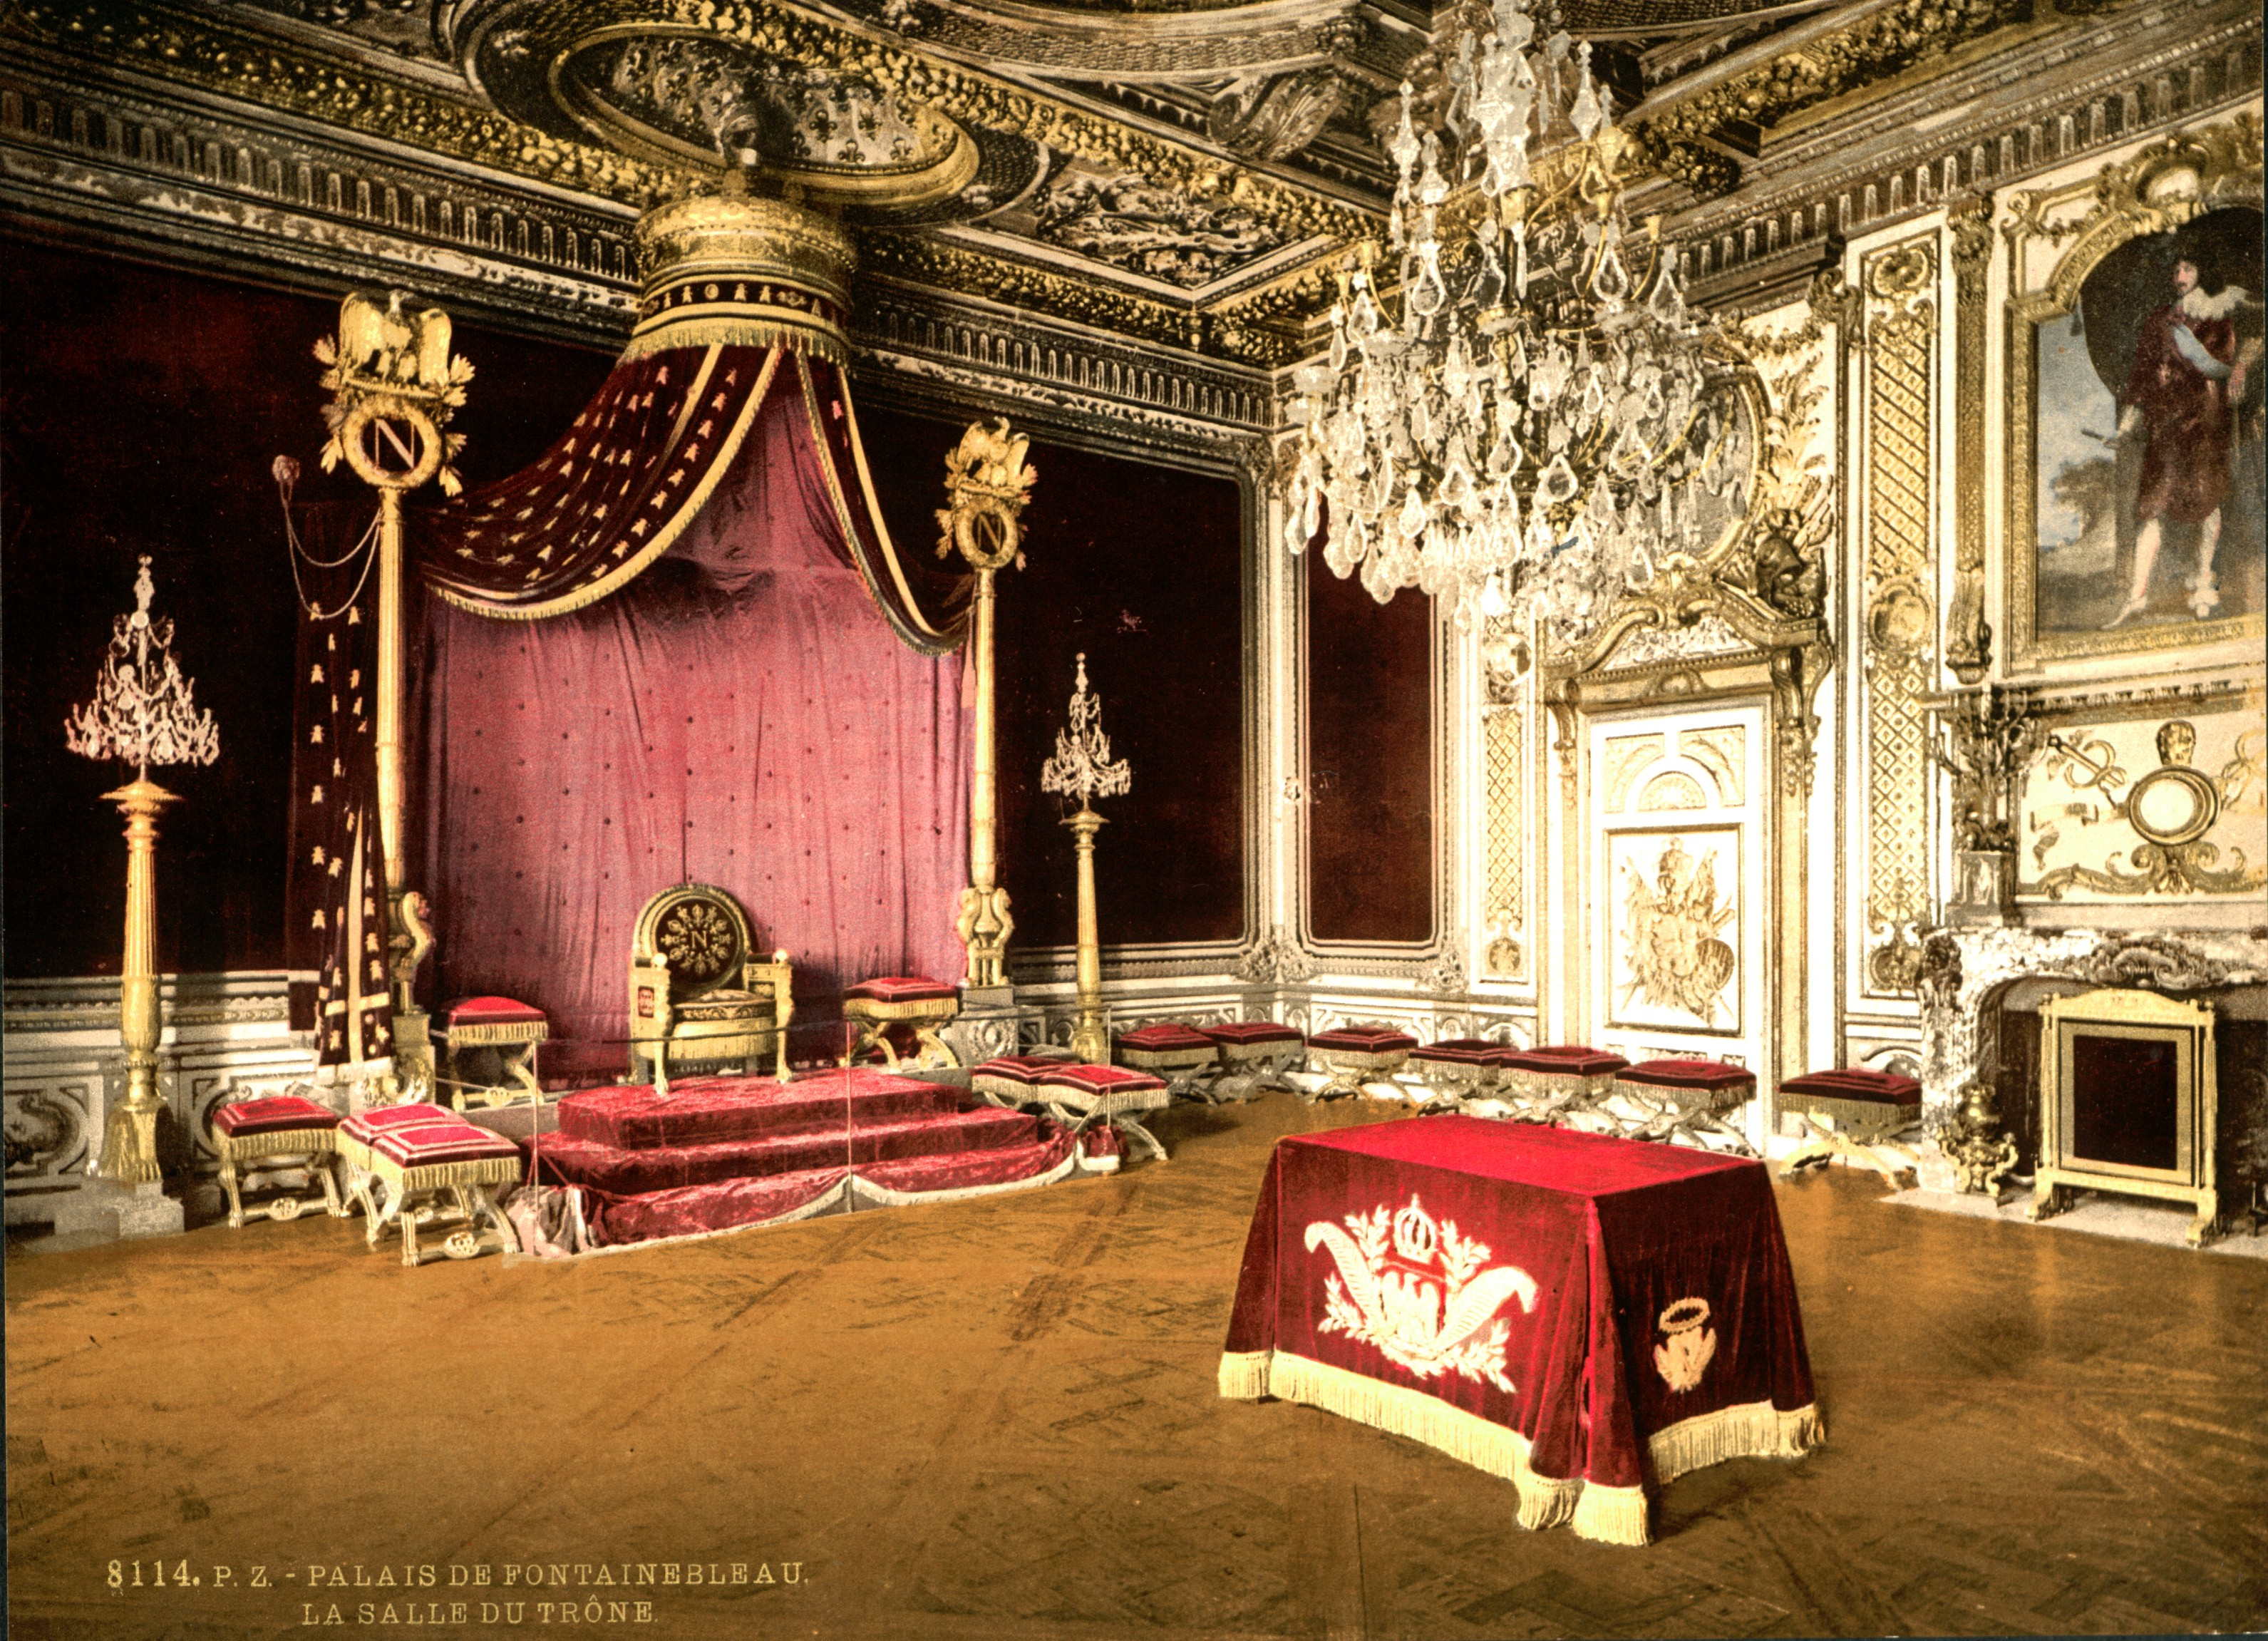 Www.historyfish.net Photochrom Collection Landscapes #C90216 3182 2302 Sala Da Pranzo Buckingham Palace